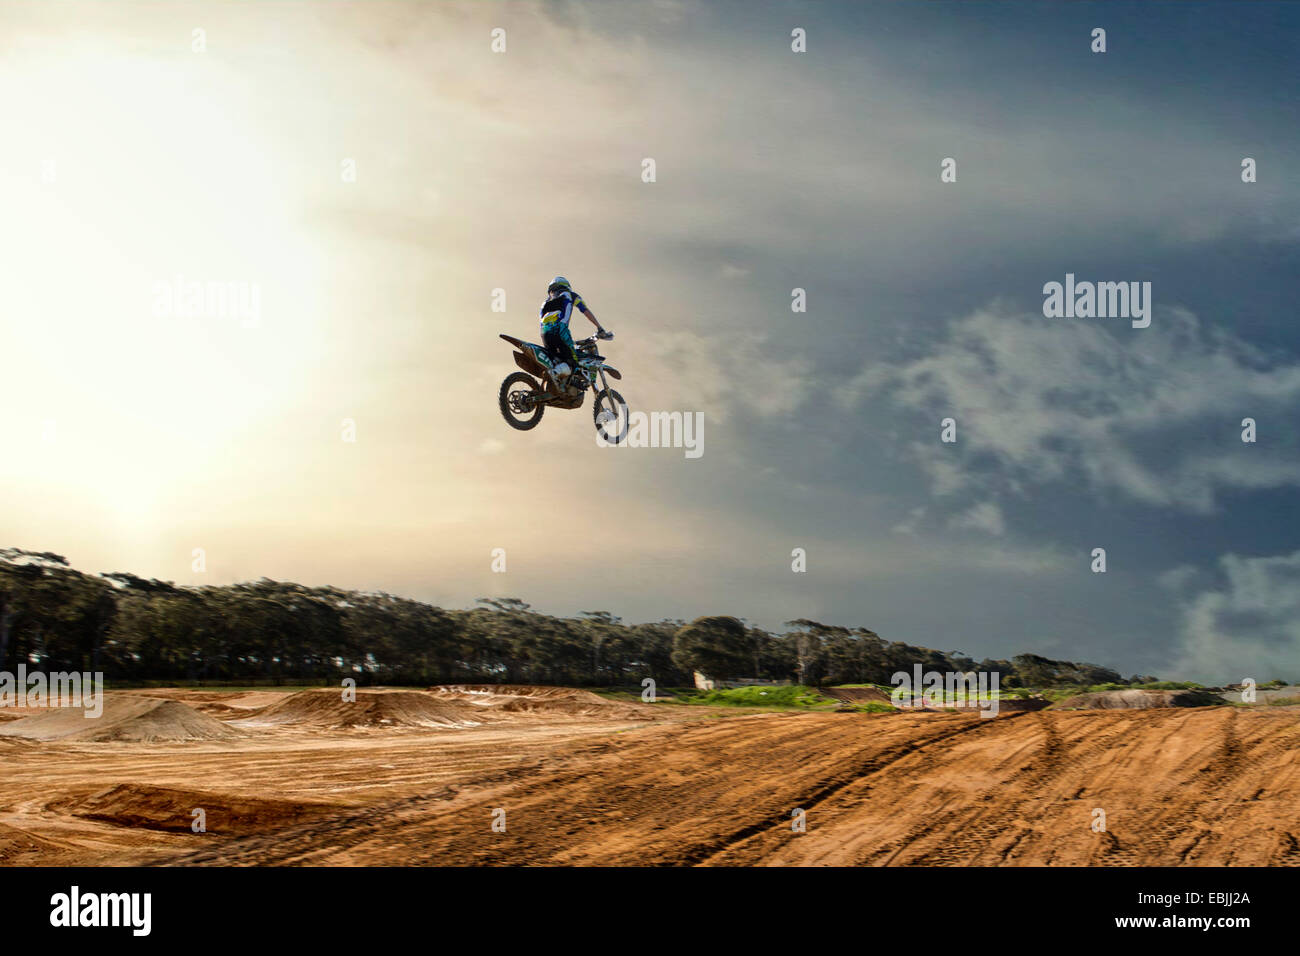 Silhouetted young male motocross racer jumping mid air over mud track - Stock Image